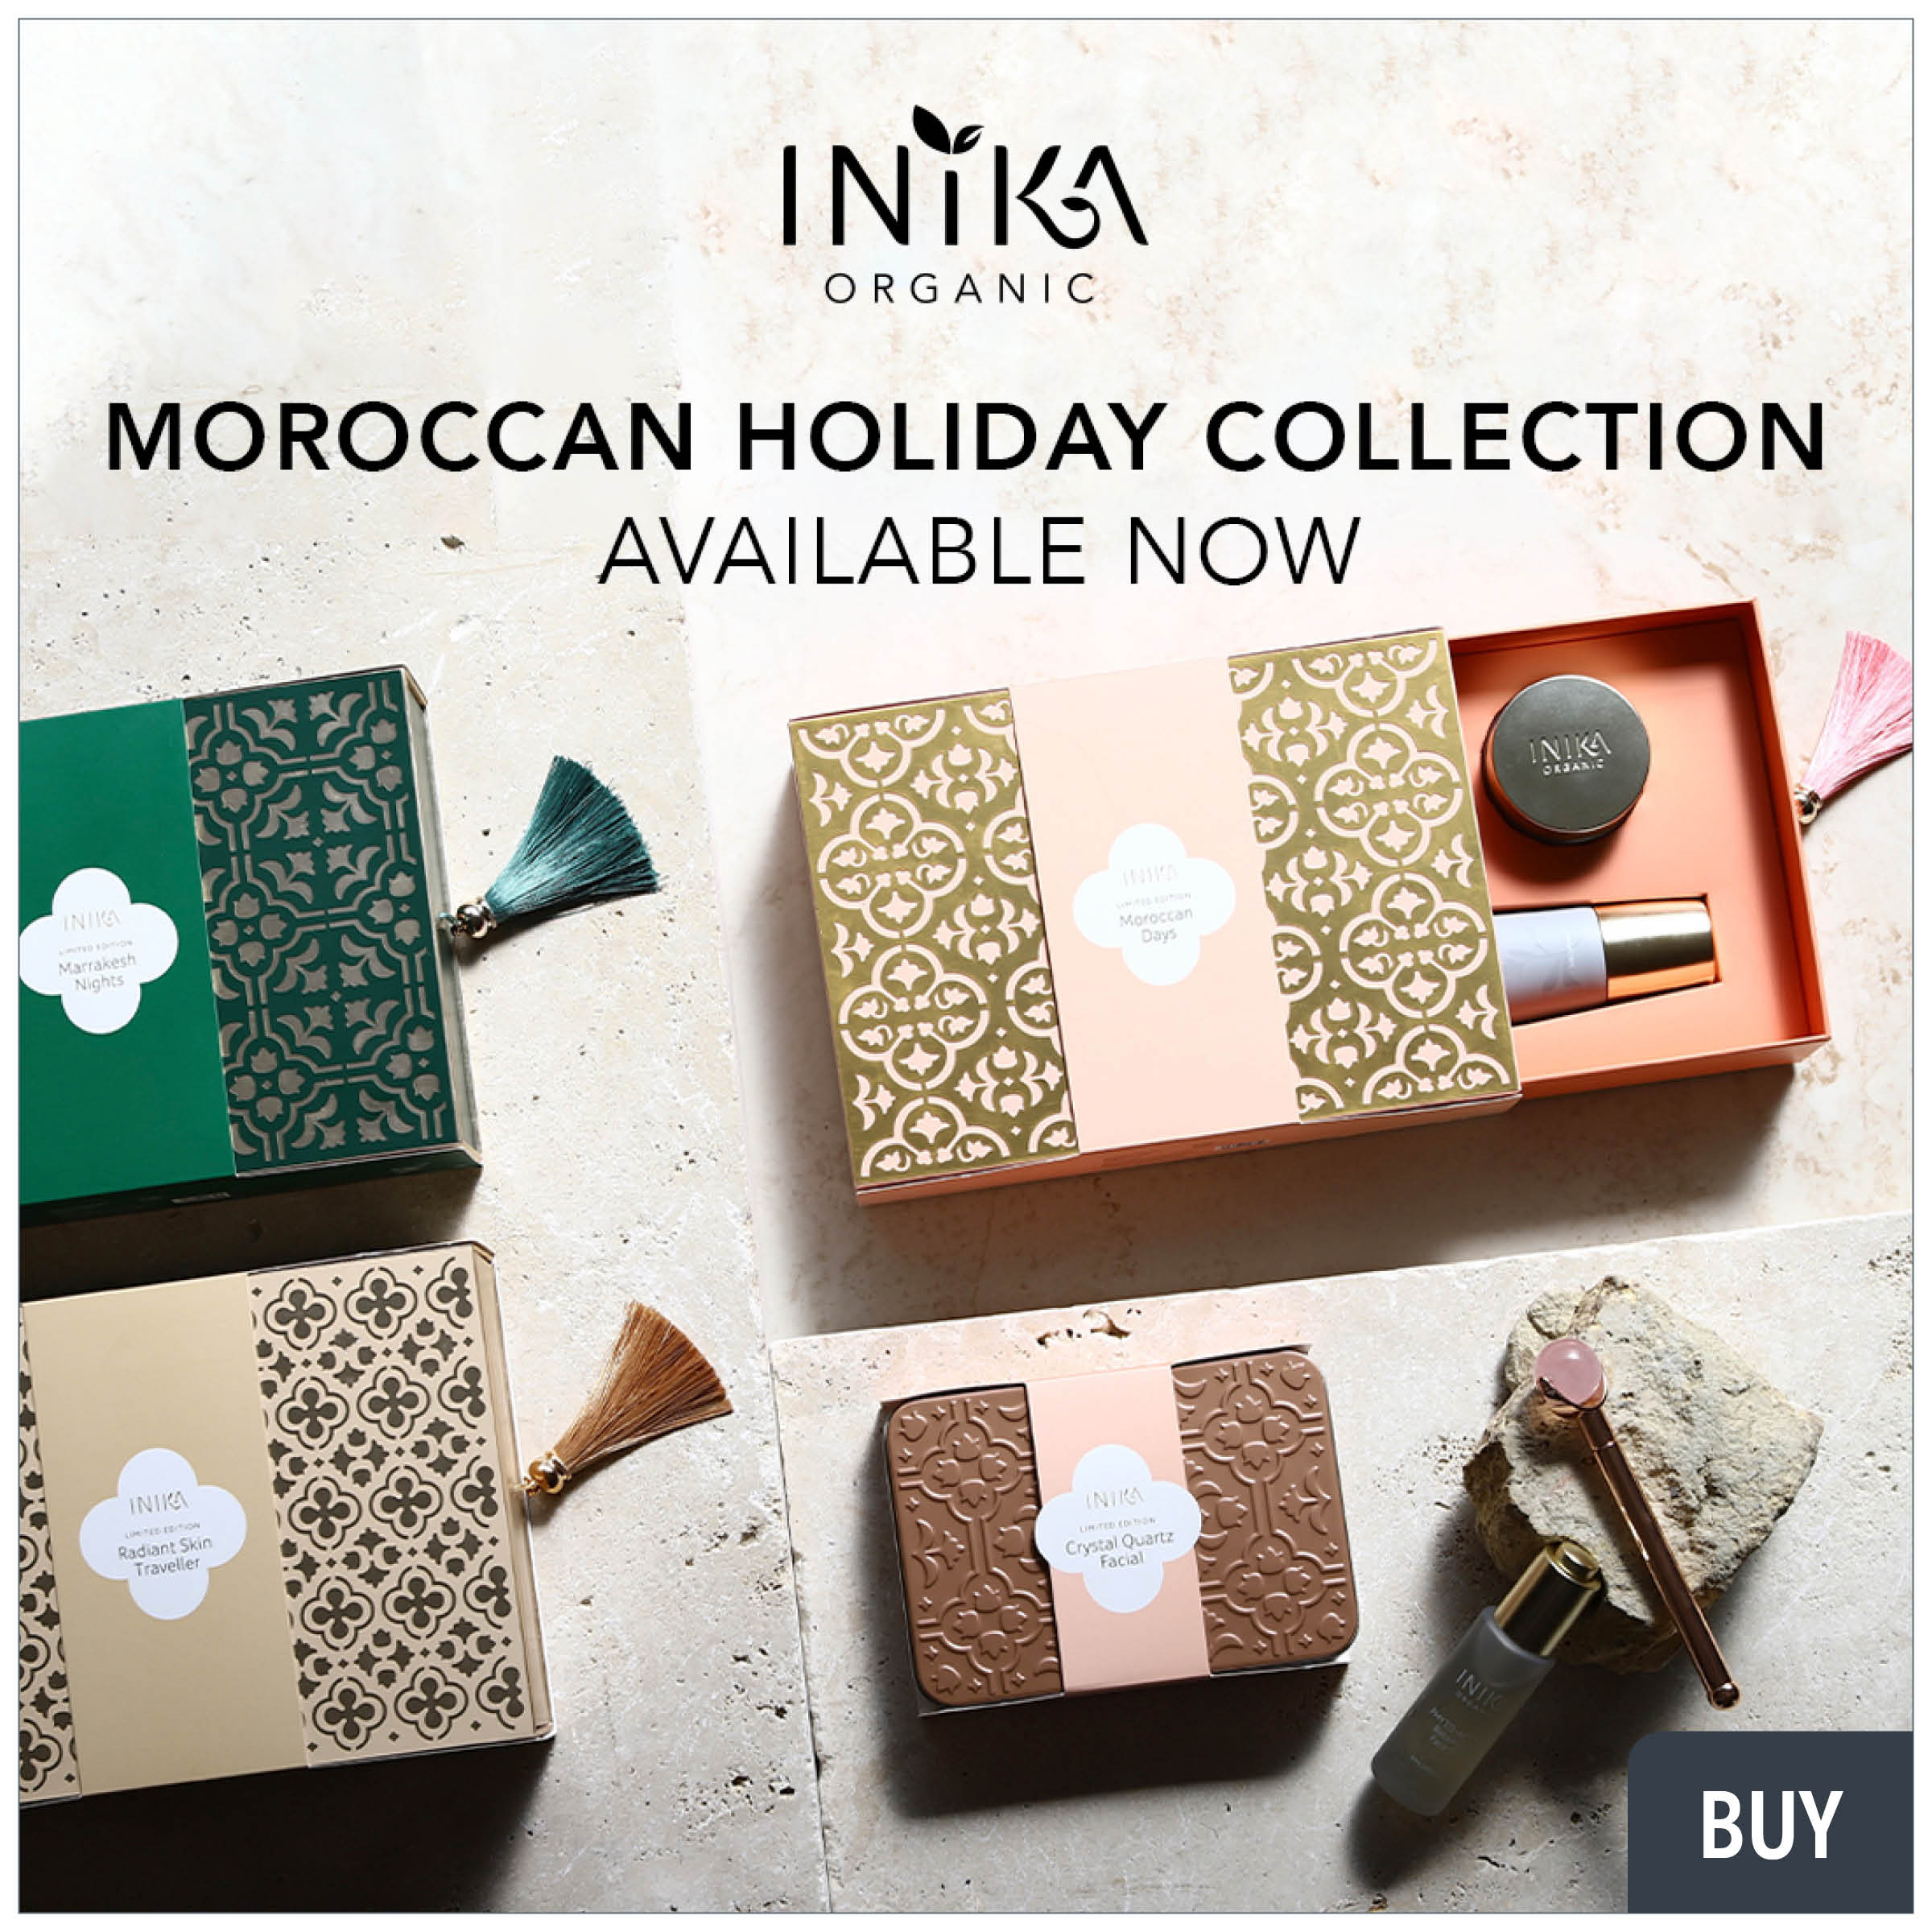 inika holiday collections from prodermal